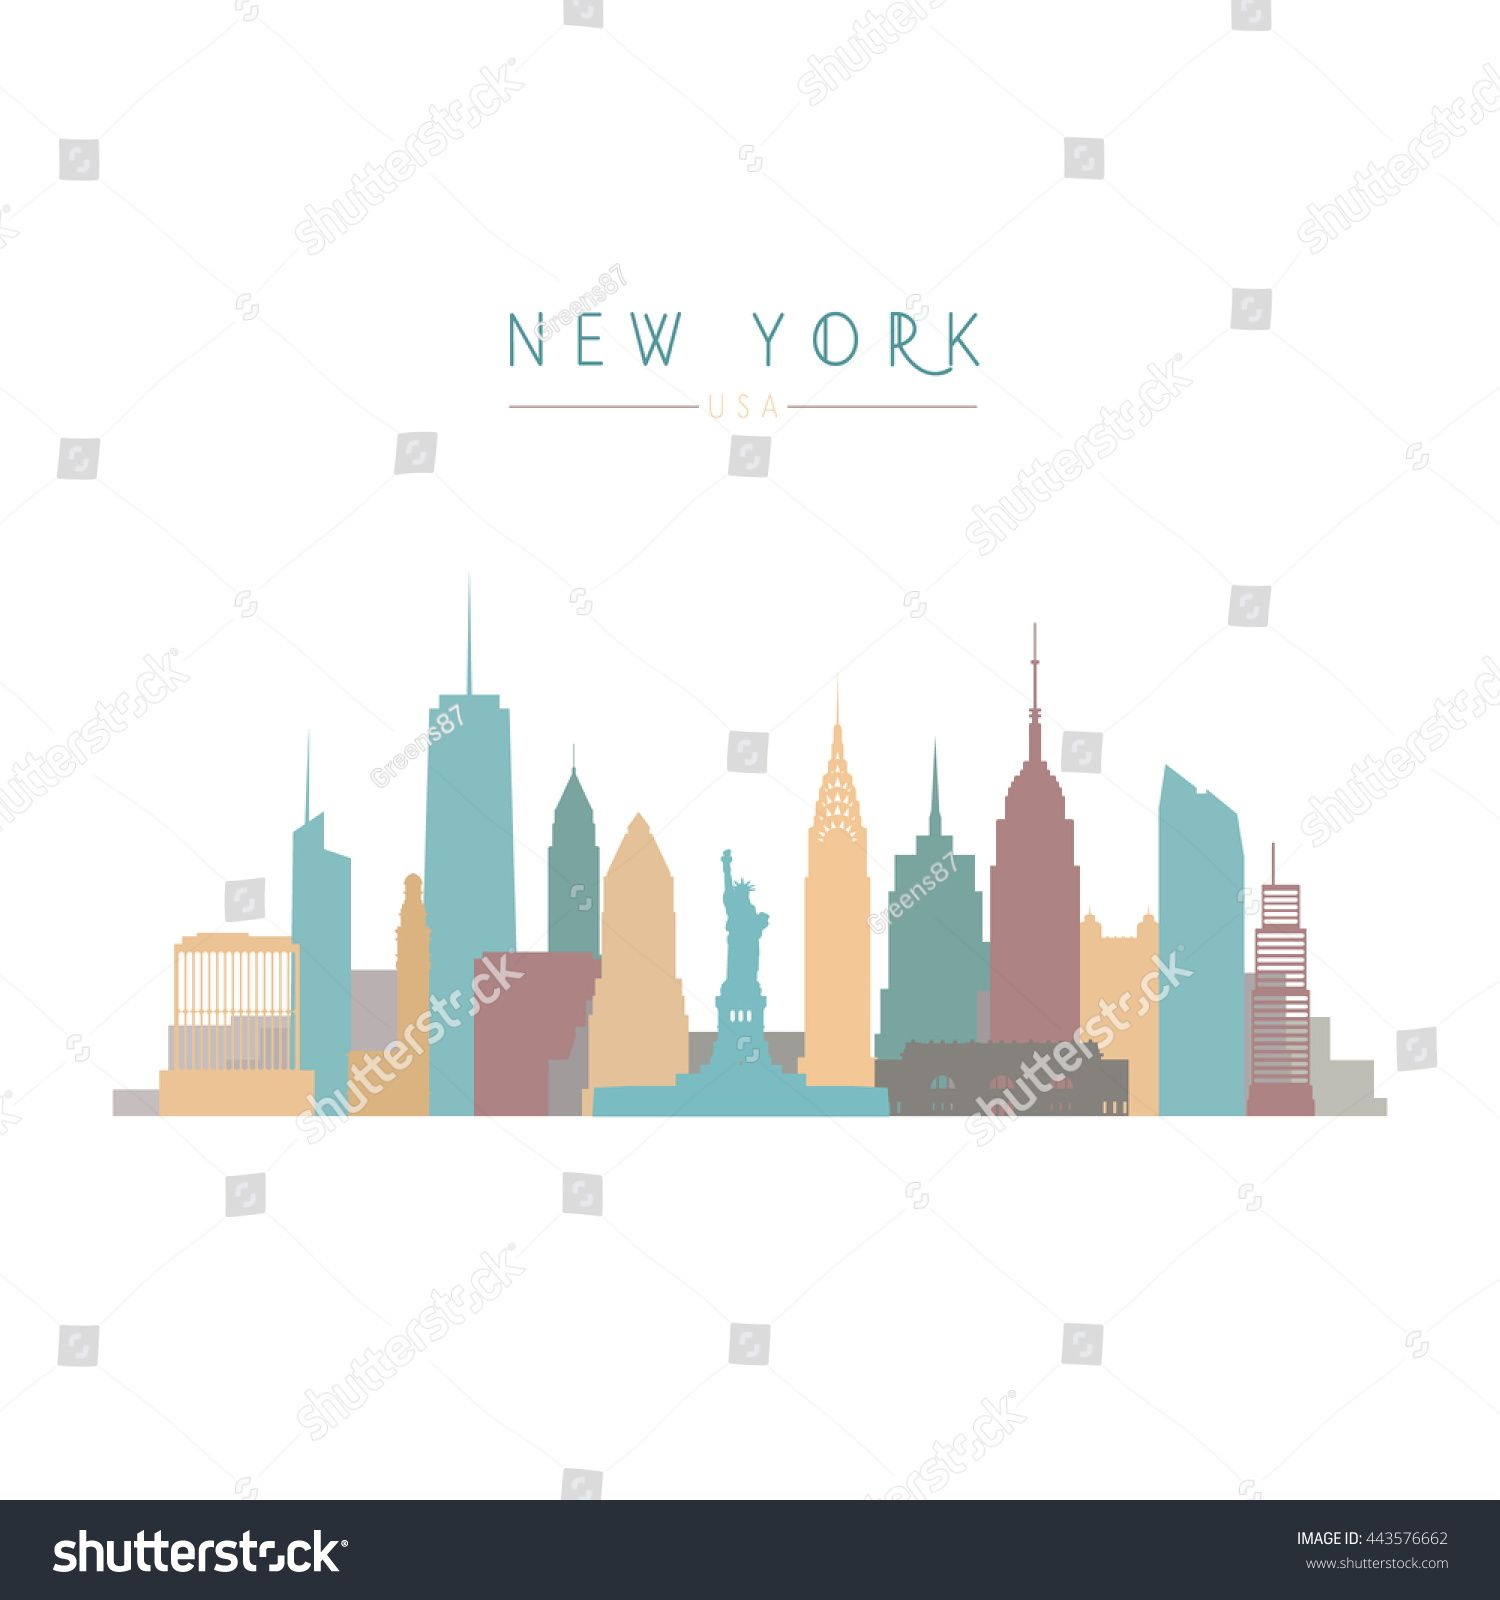 Image Result For Jersey City Skyline Chalk City Skyline Jersey City